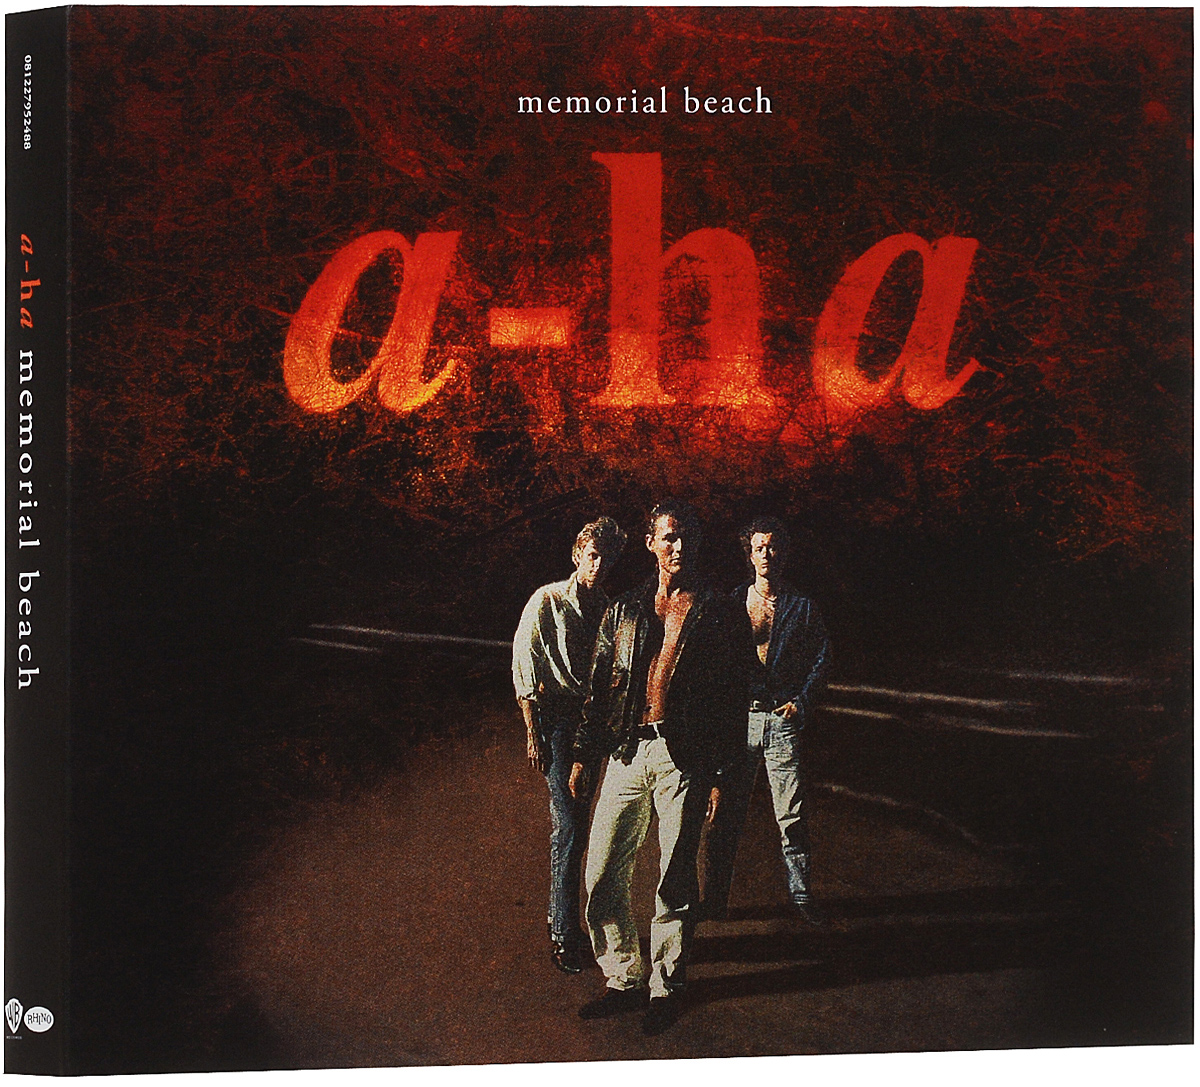 """A-Ha"" A-Ha. Memorial Beach. Deluxe Edition (2 CD)"